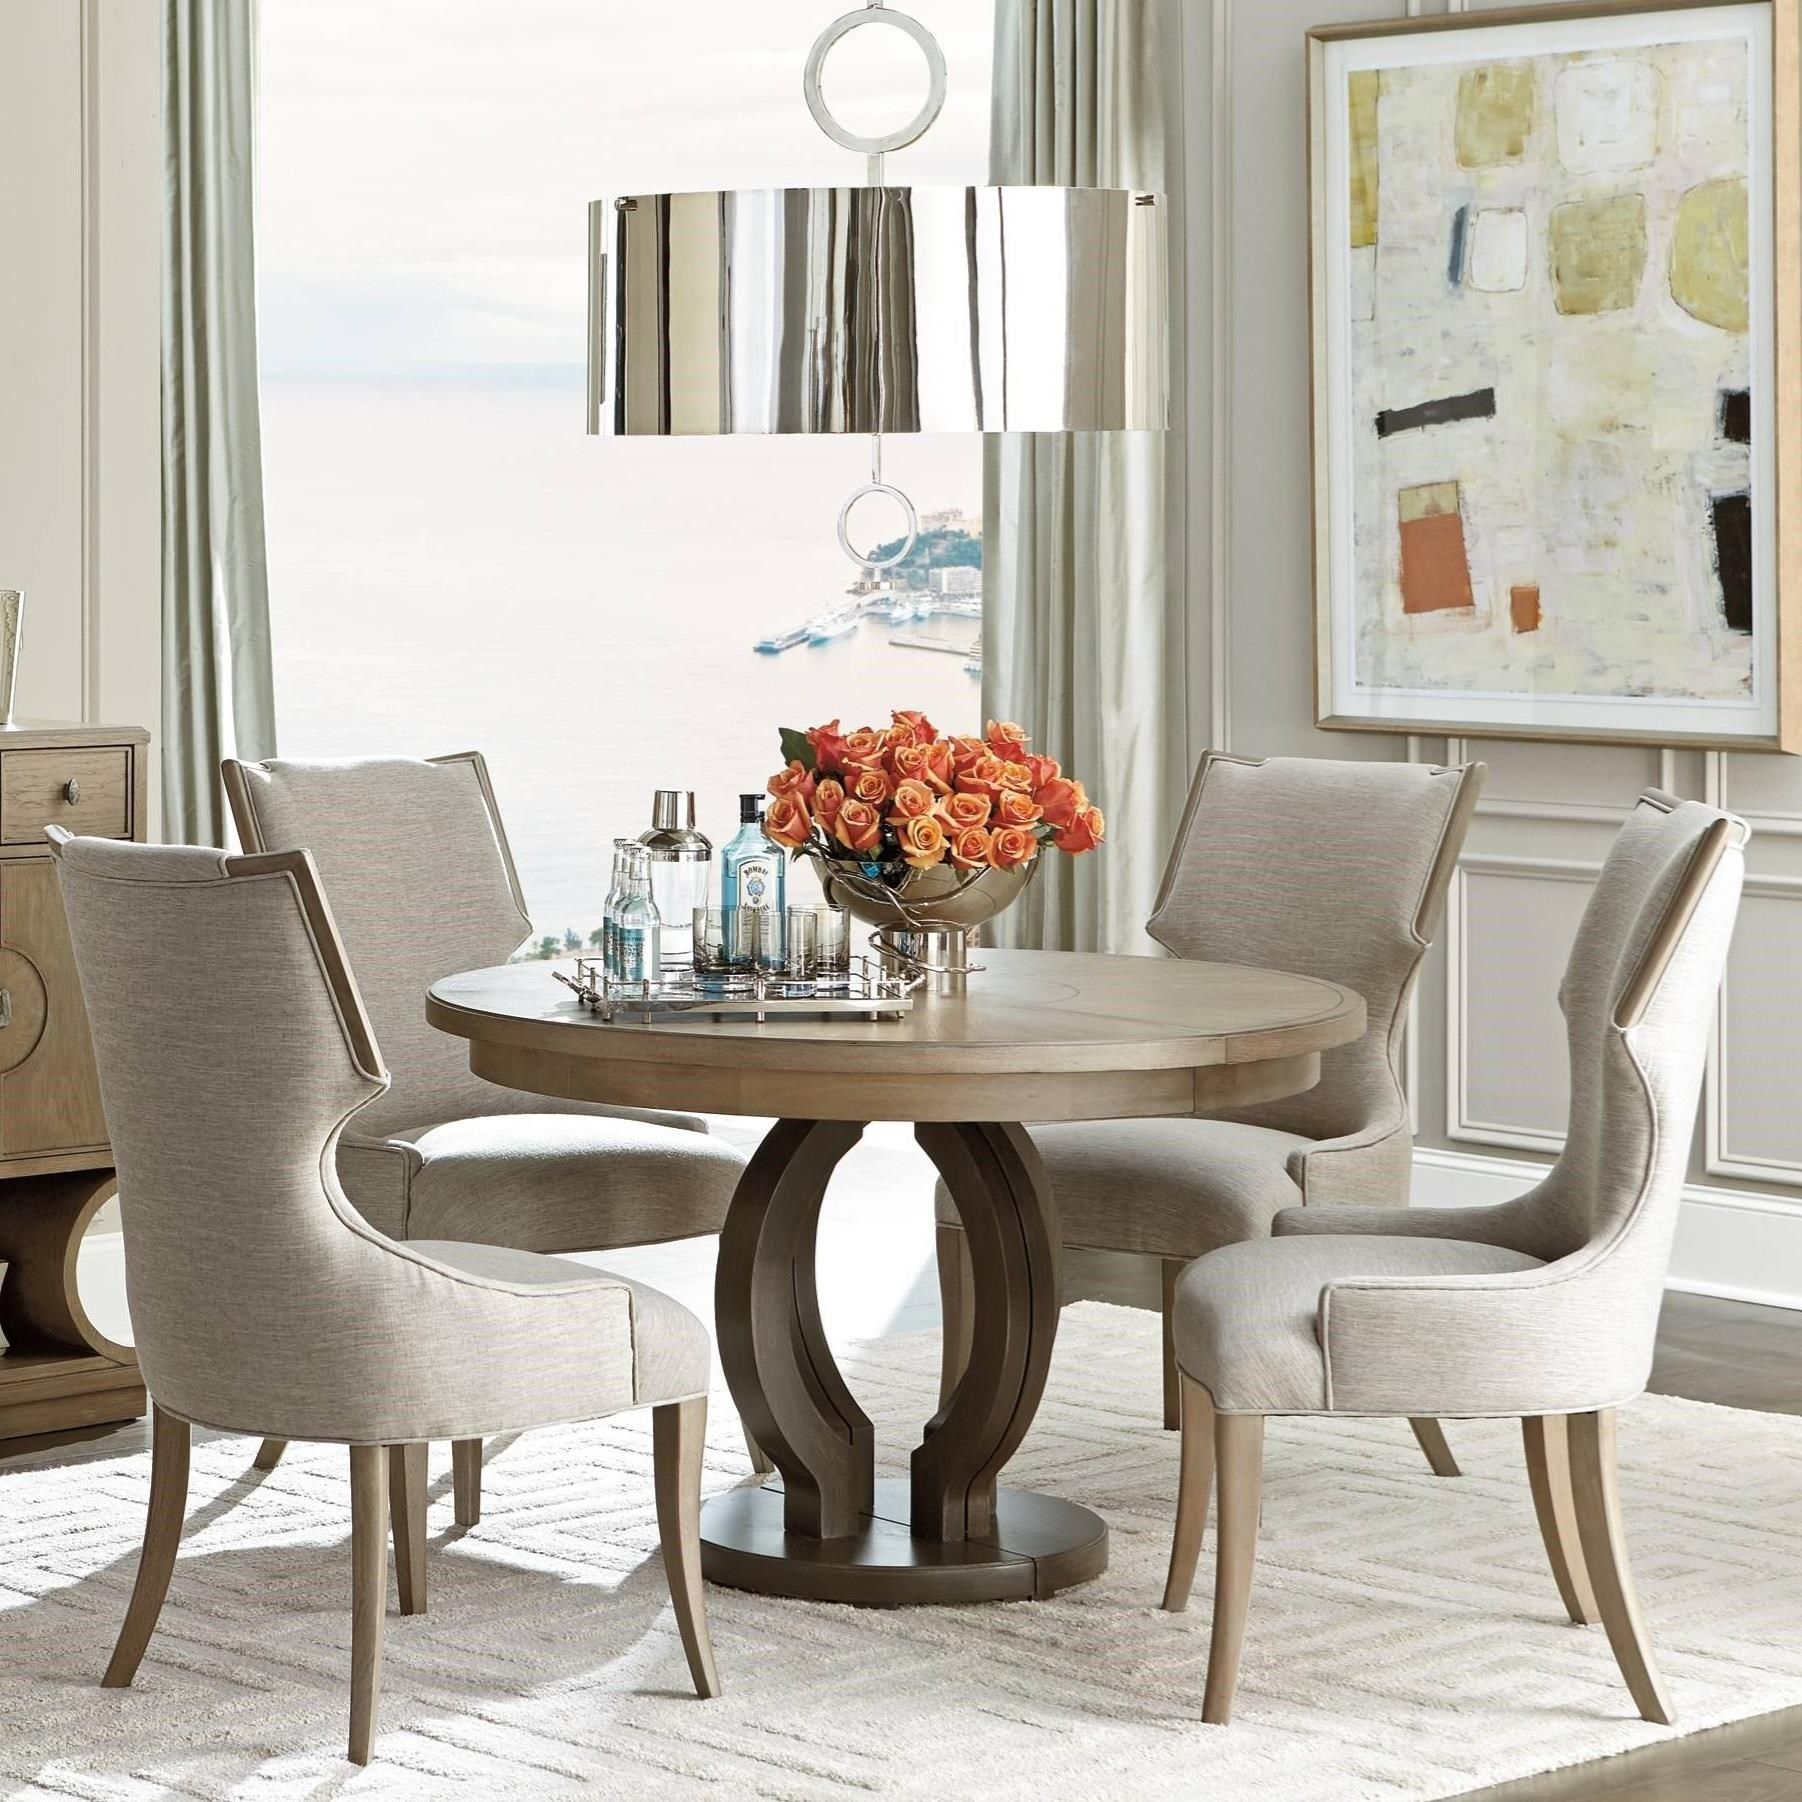 Virage 5 Piece Round Dining Table Set By Stanley Furniture Round Dining Table Sets Round Wood Dining Table Round Dining Table